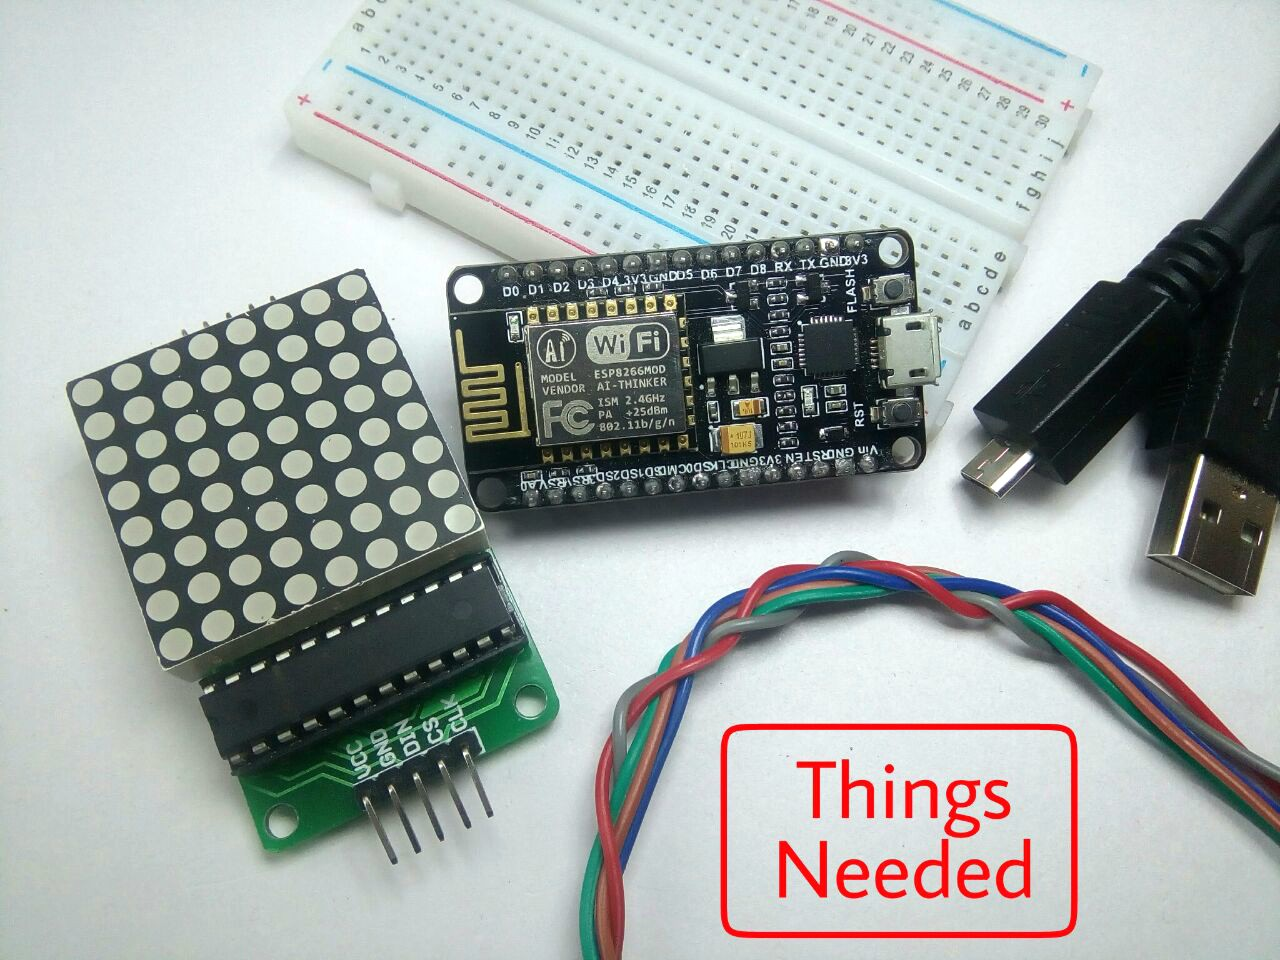 Picture of Things Needed